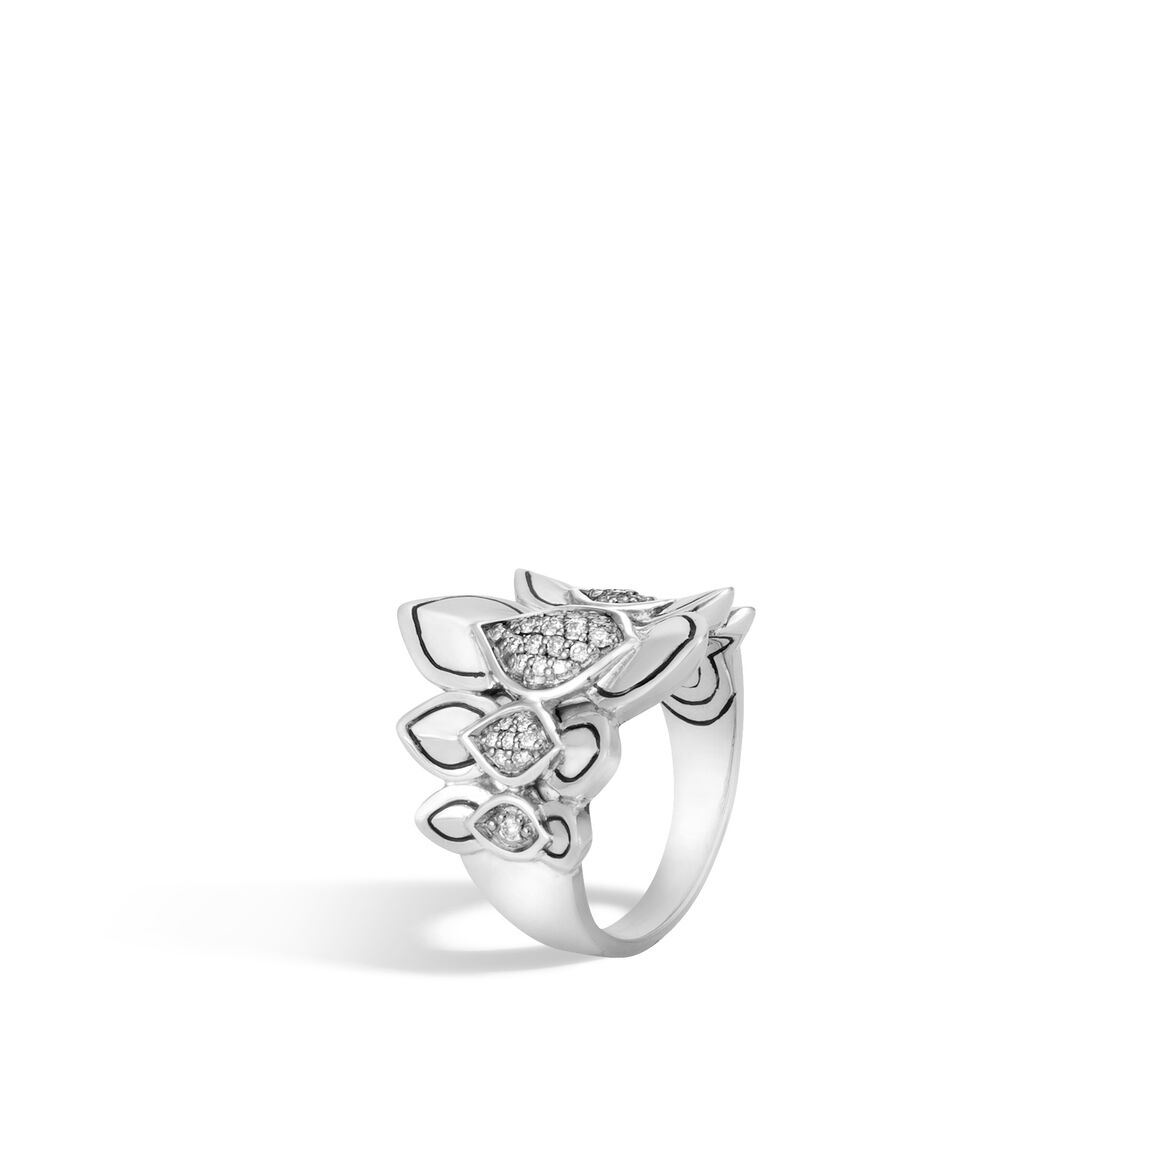 Legends Naga Saddle Ring in Silver with Diamonds